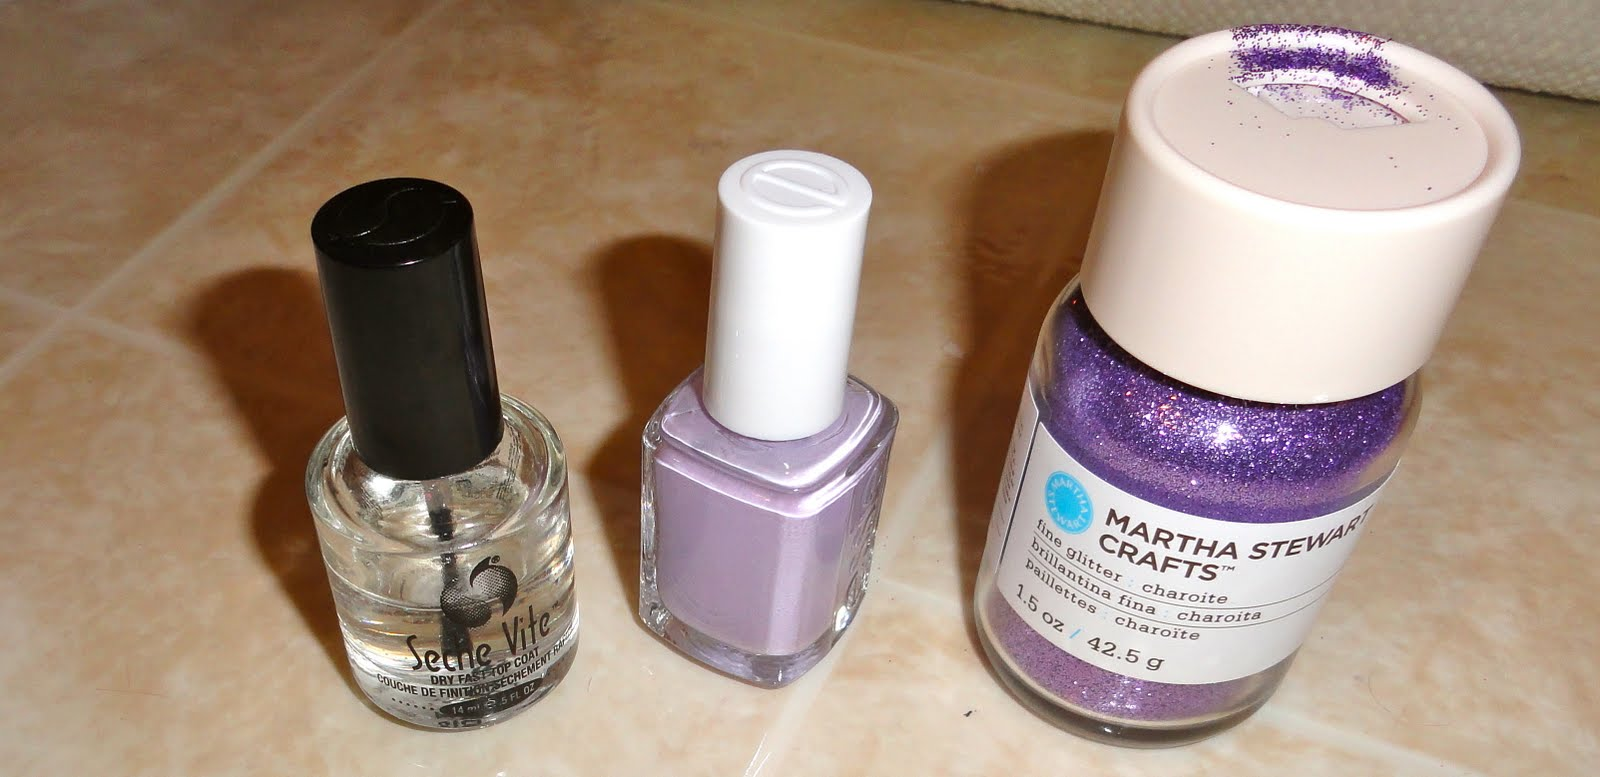 Stylish Nail DIY: Ombre Glitter Nails | Stylelista Confessions